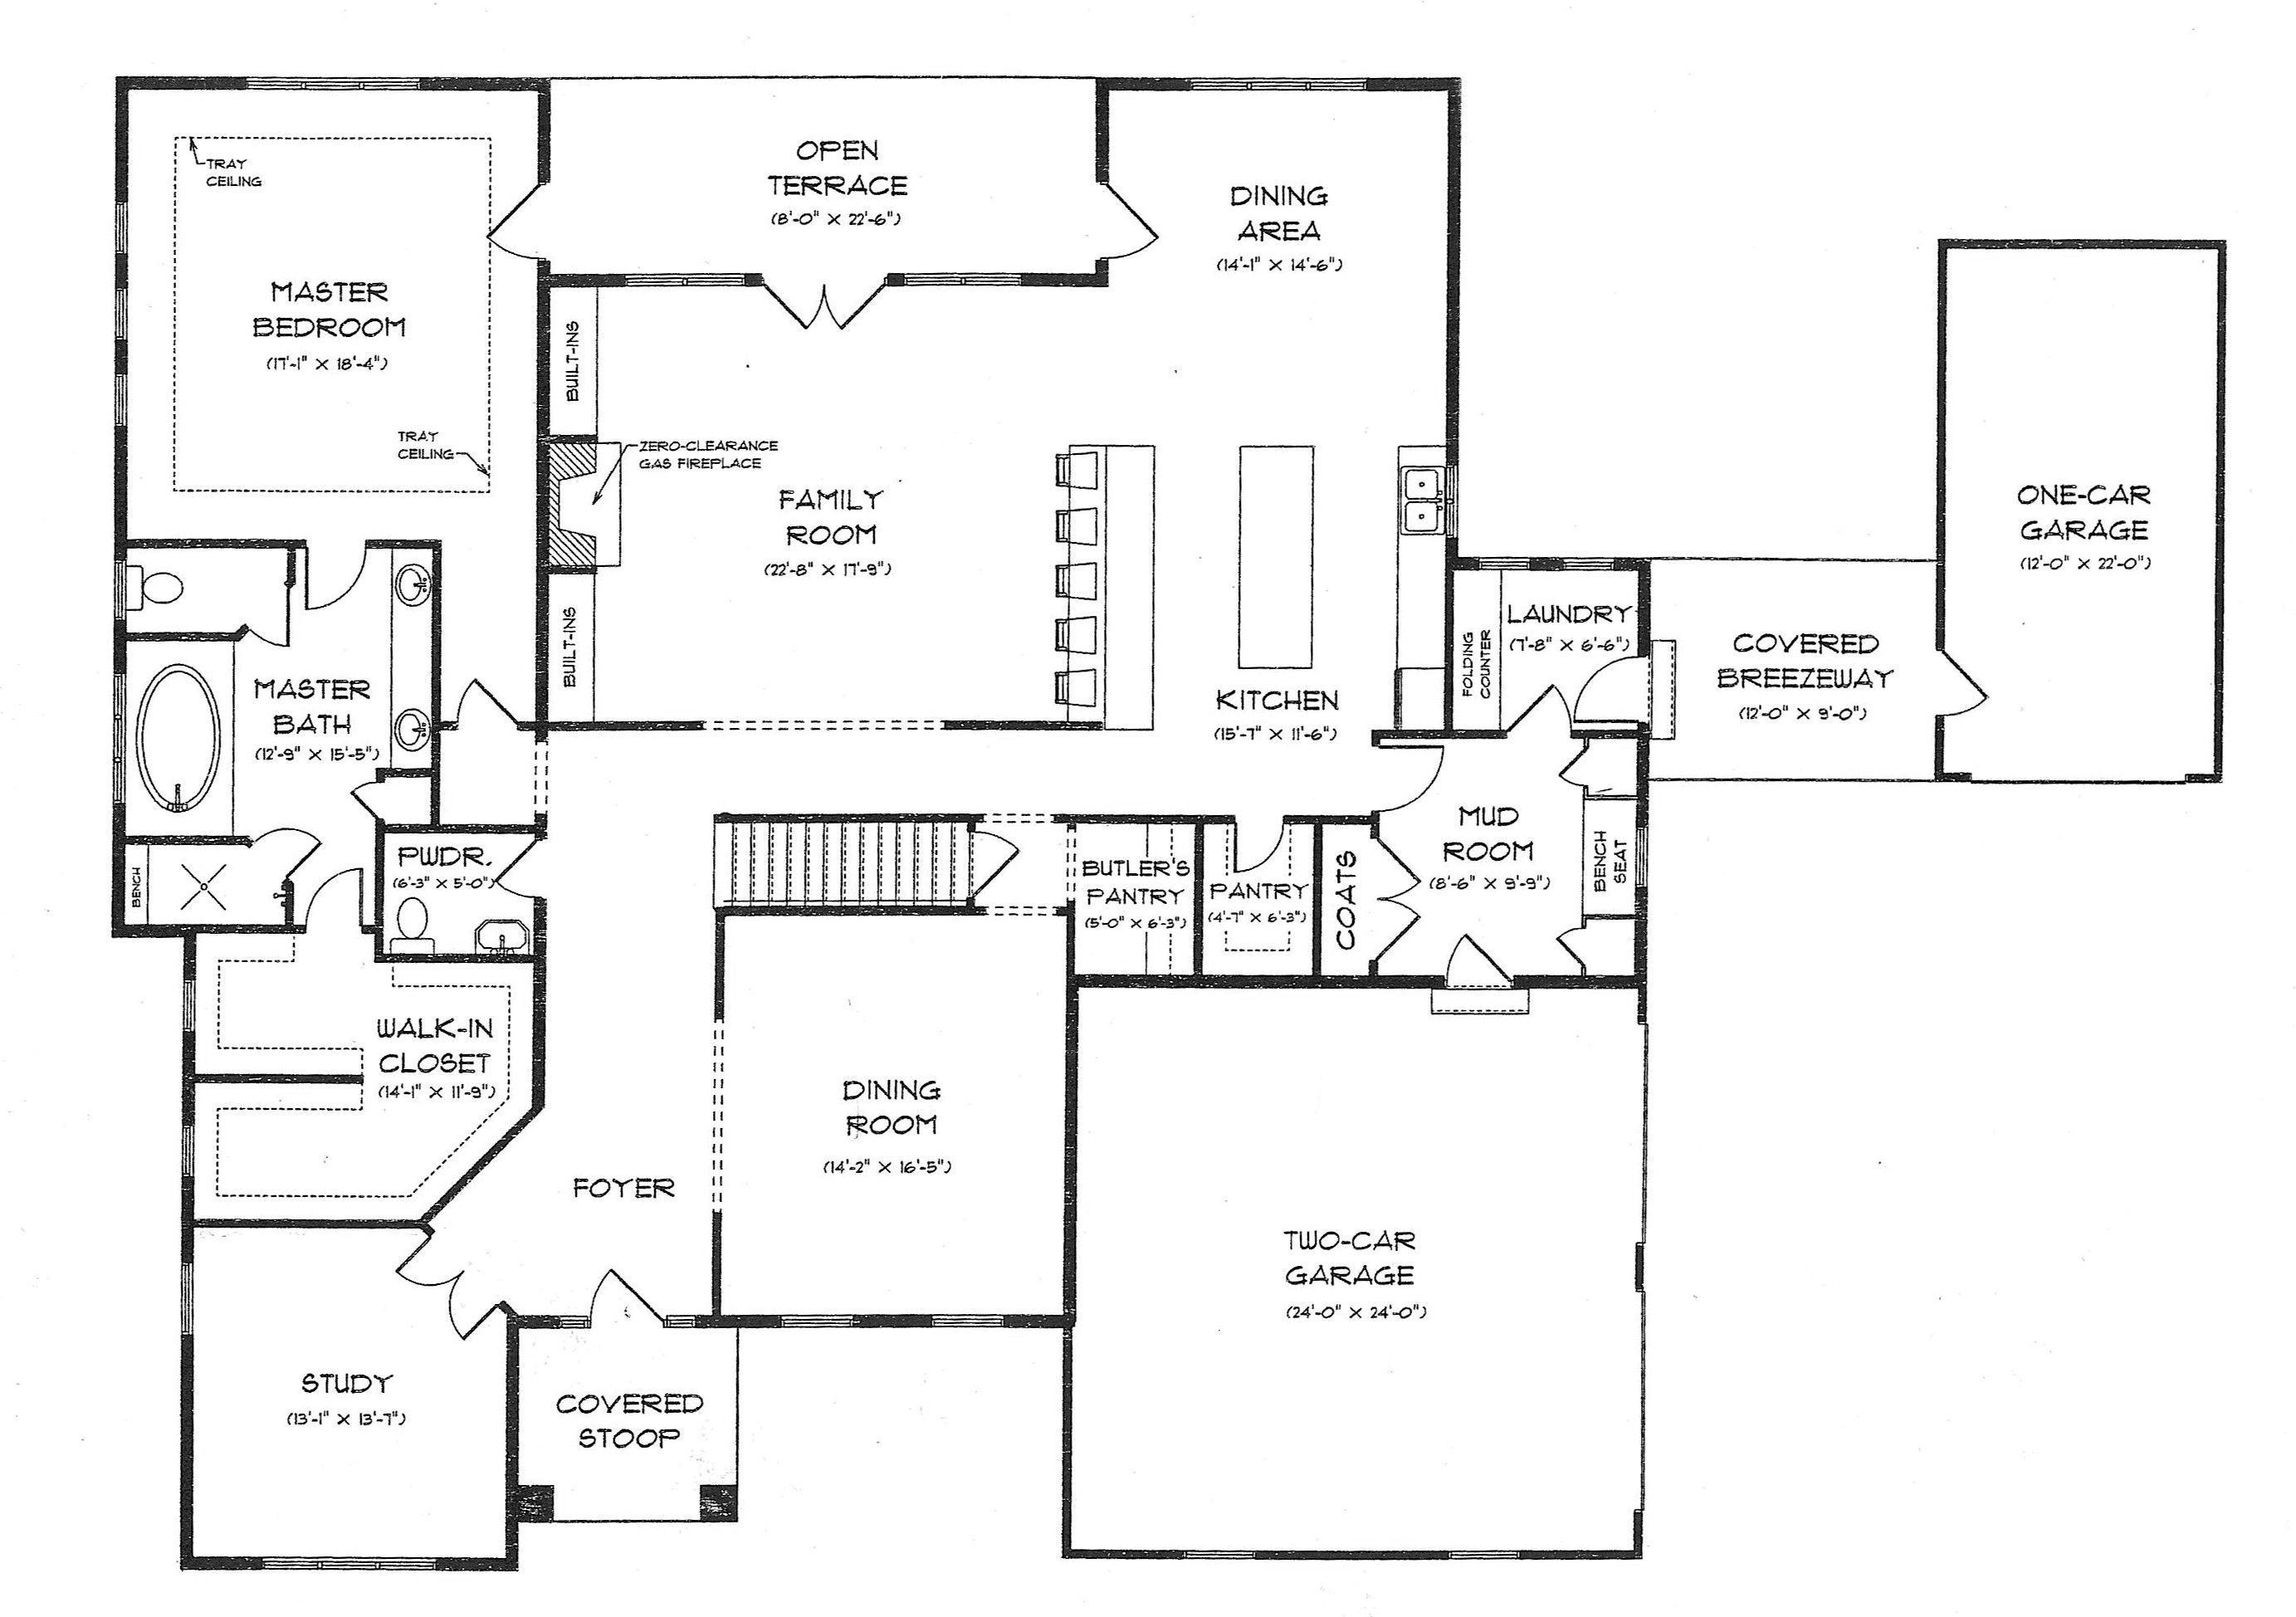 Housing Floor Plans Layout Bella Home Builders Guide To The 2010 Saratoga Showcase